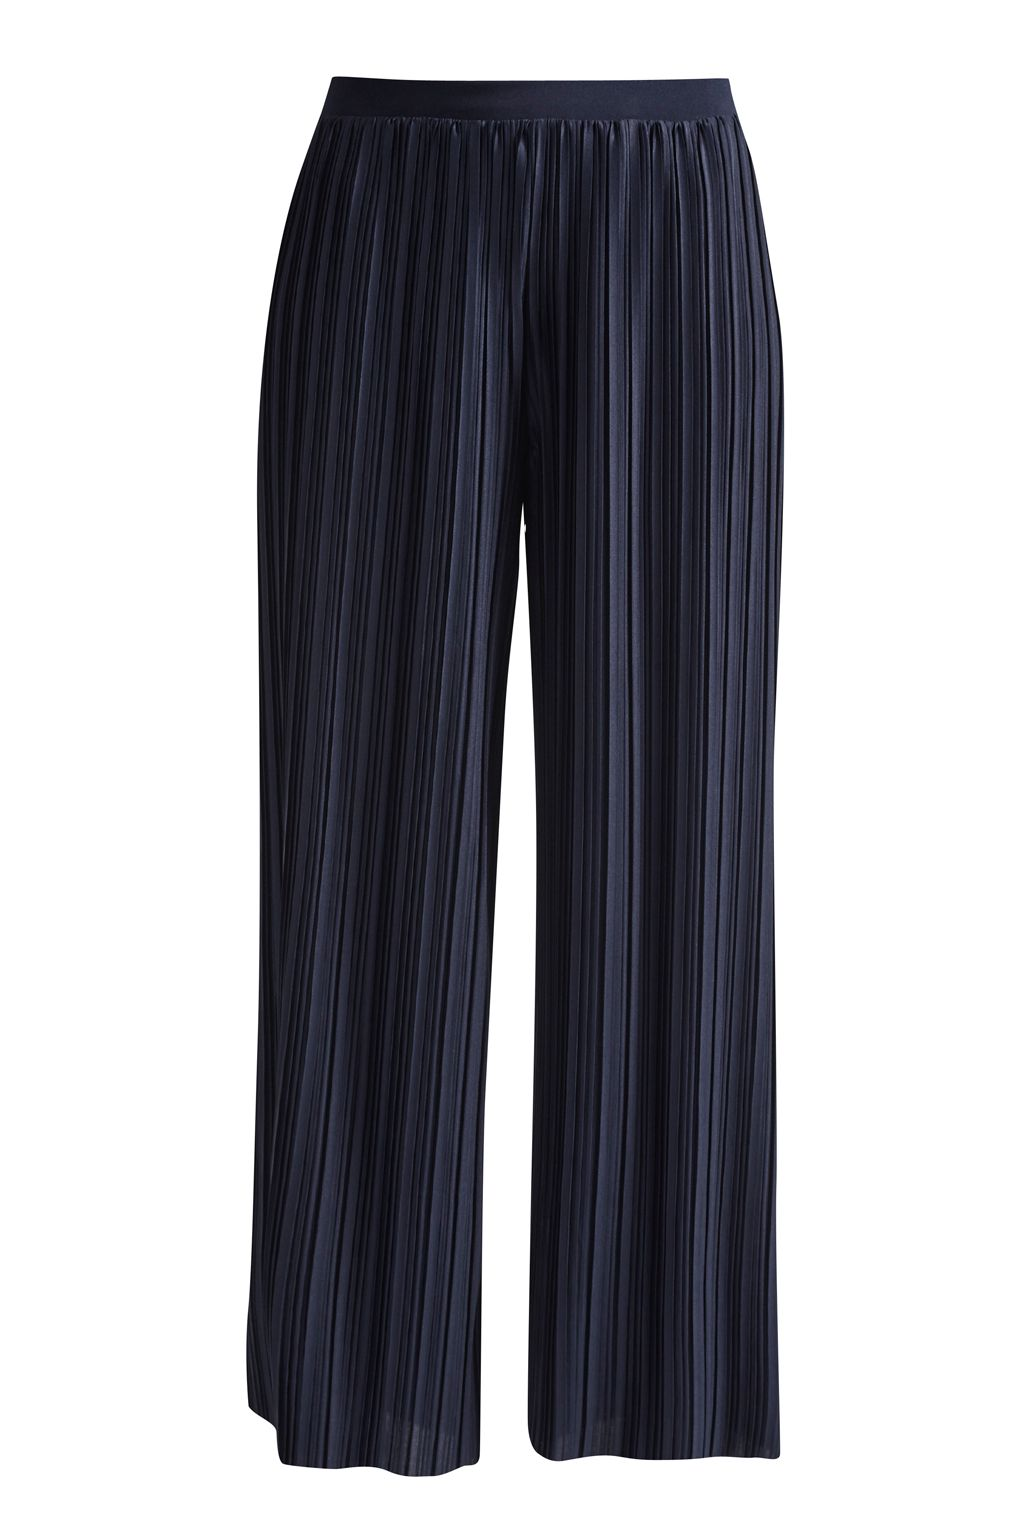 Great Plains Narcissus Jersey Flared Culottes, Blue